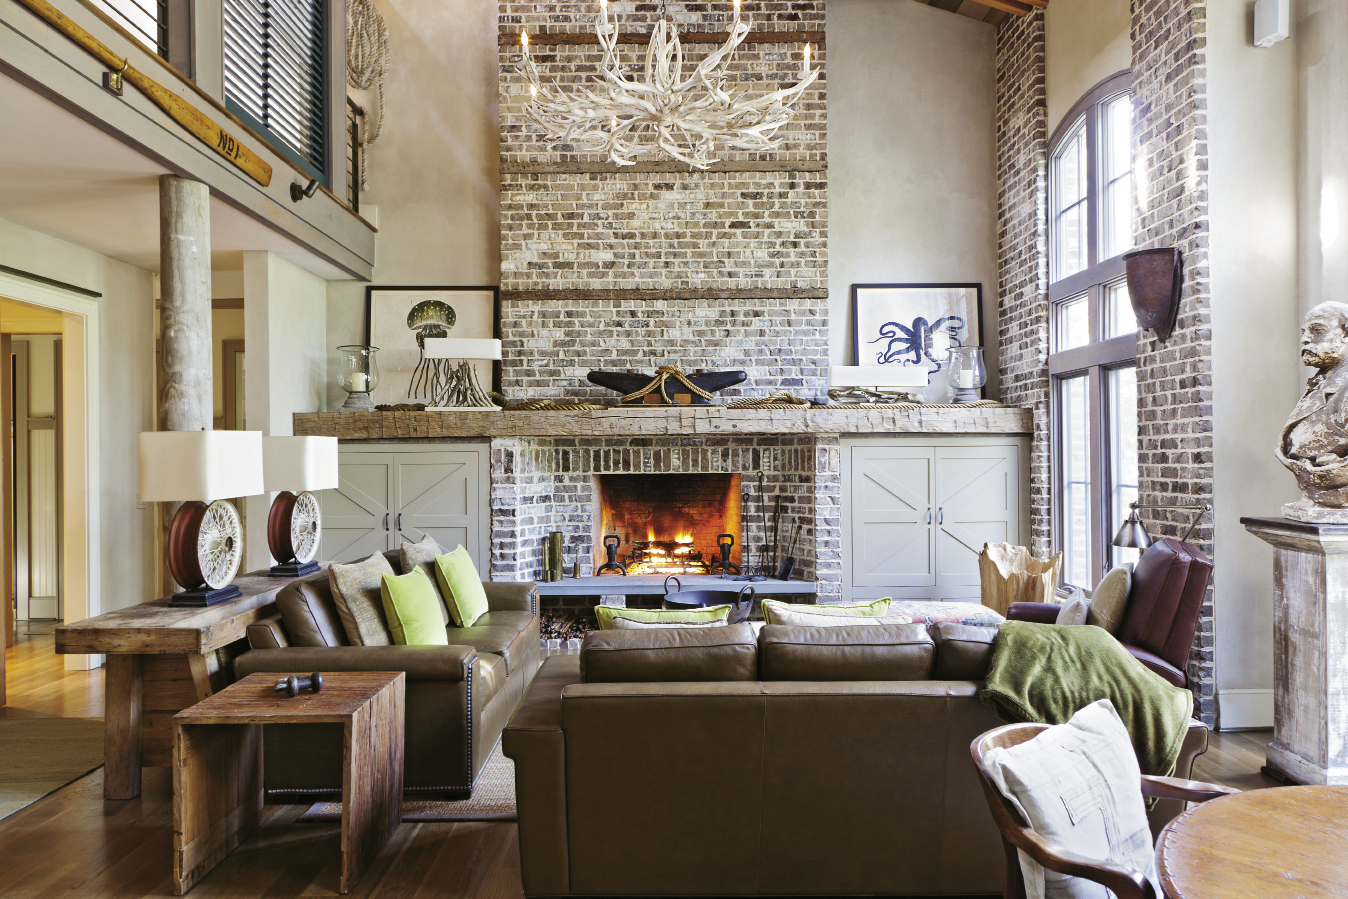 High ceilings and exposed brick recall downtown's historical cotton warehouses. Industrial details, such as iron railings, and nautical touches, such as the anchor and ropes displayed on the mantel, are touchstones of the owners' personal style.